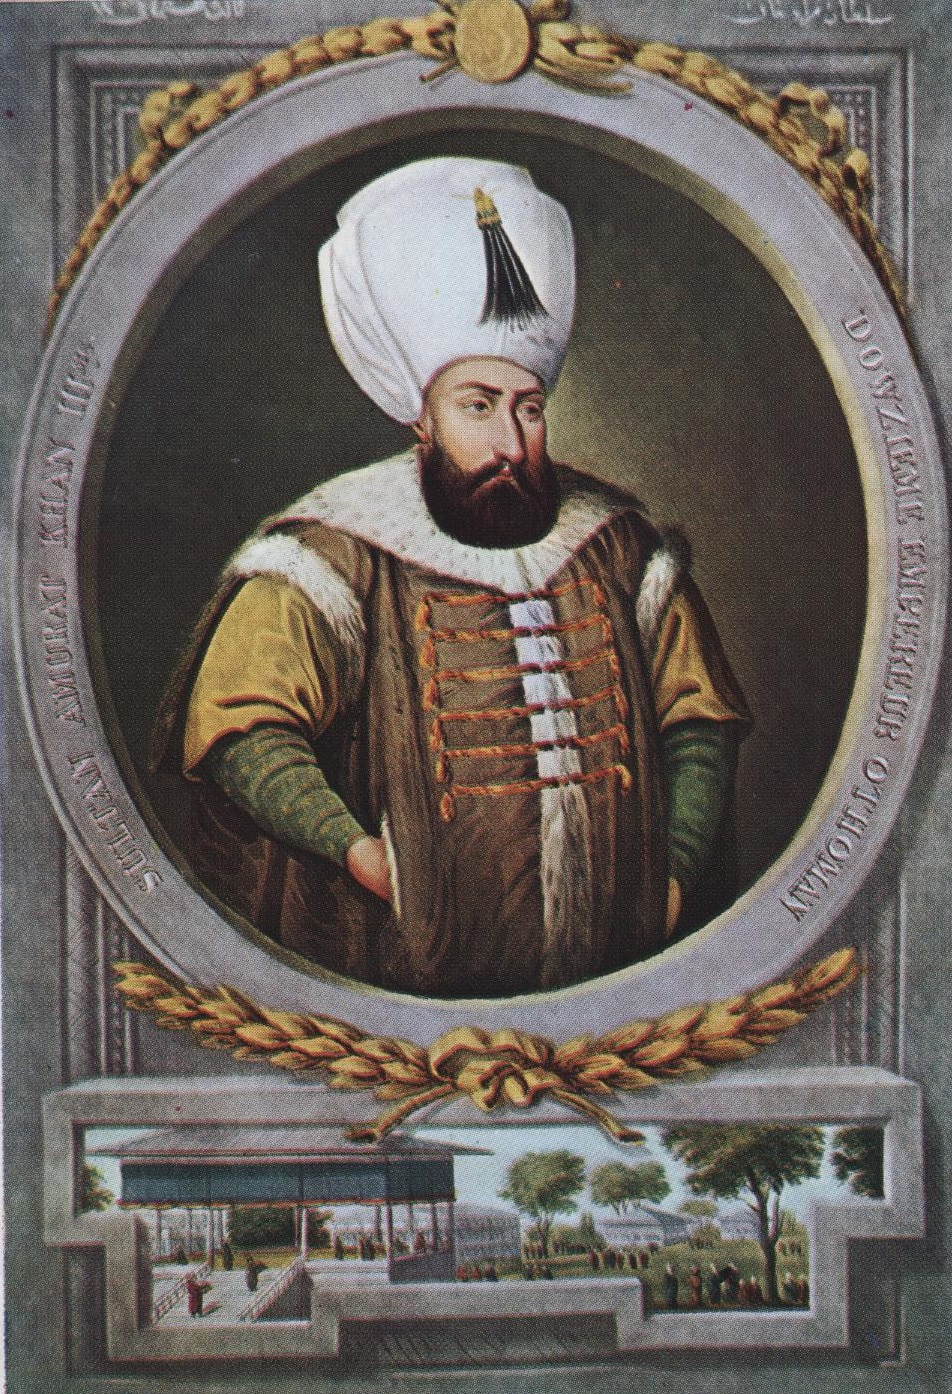 Hiking and brief biography of Suleiman the Magnificent